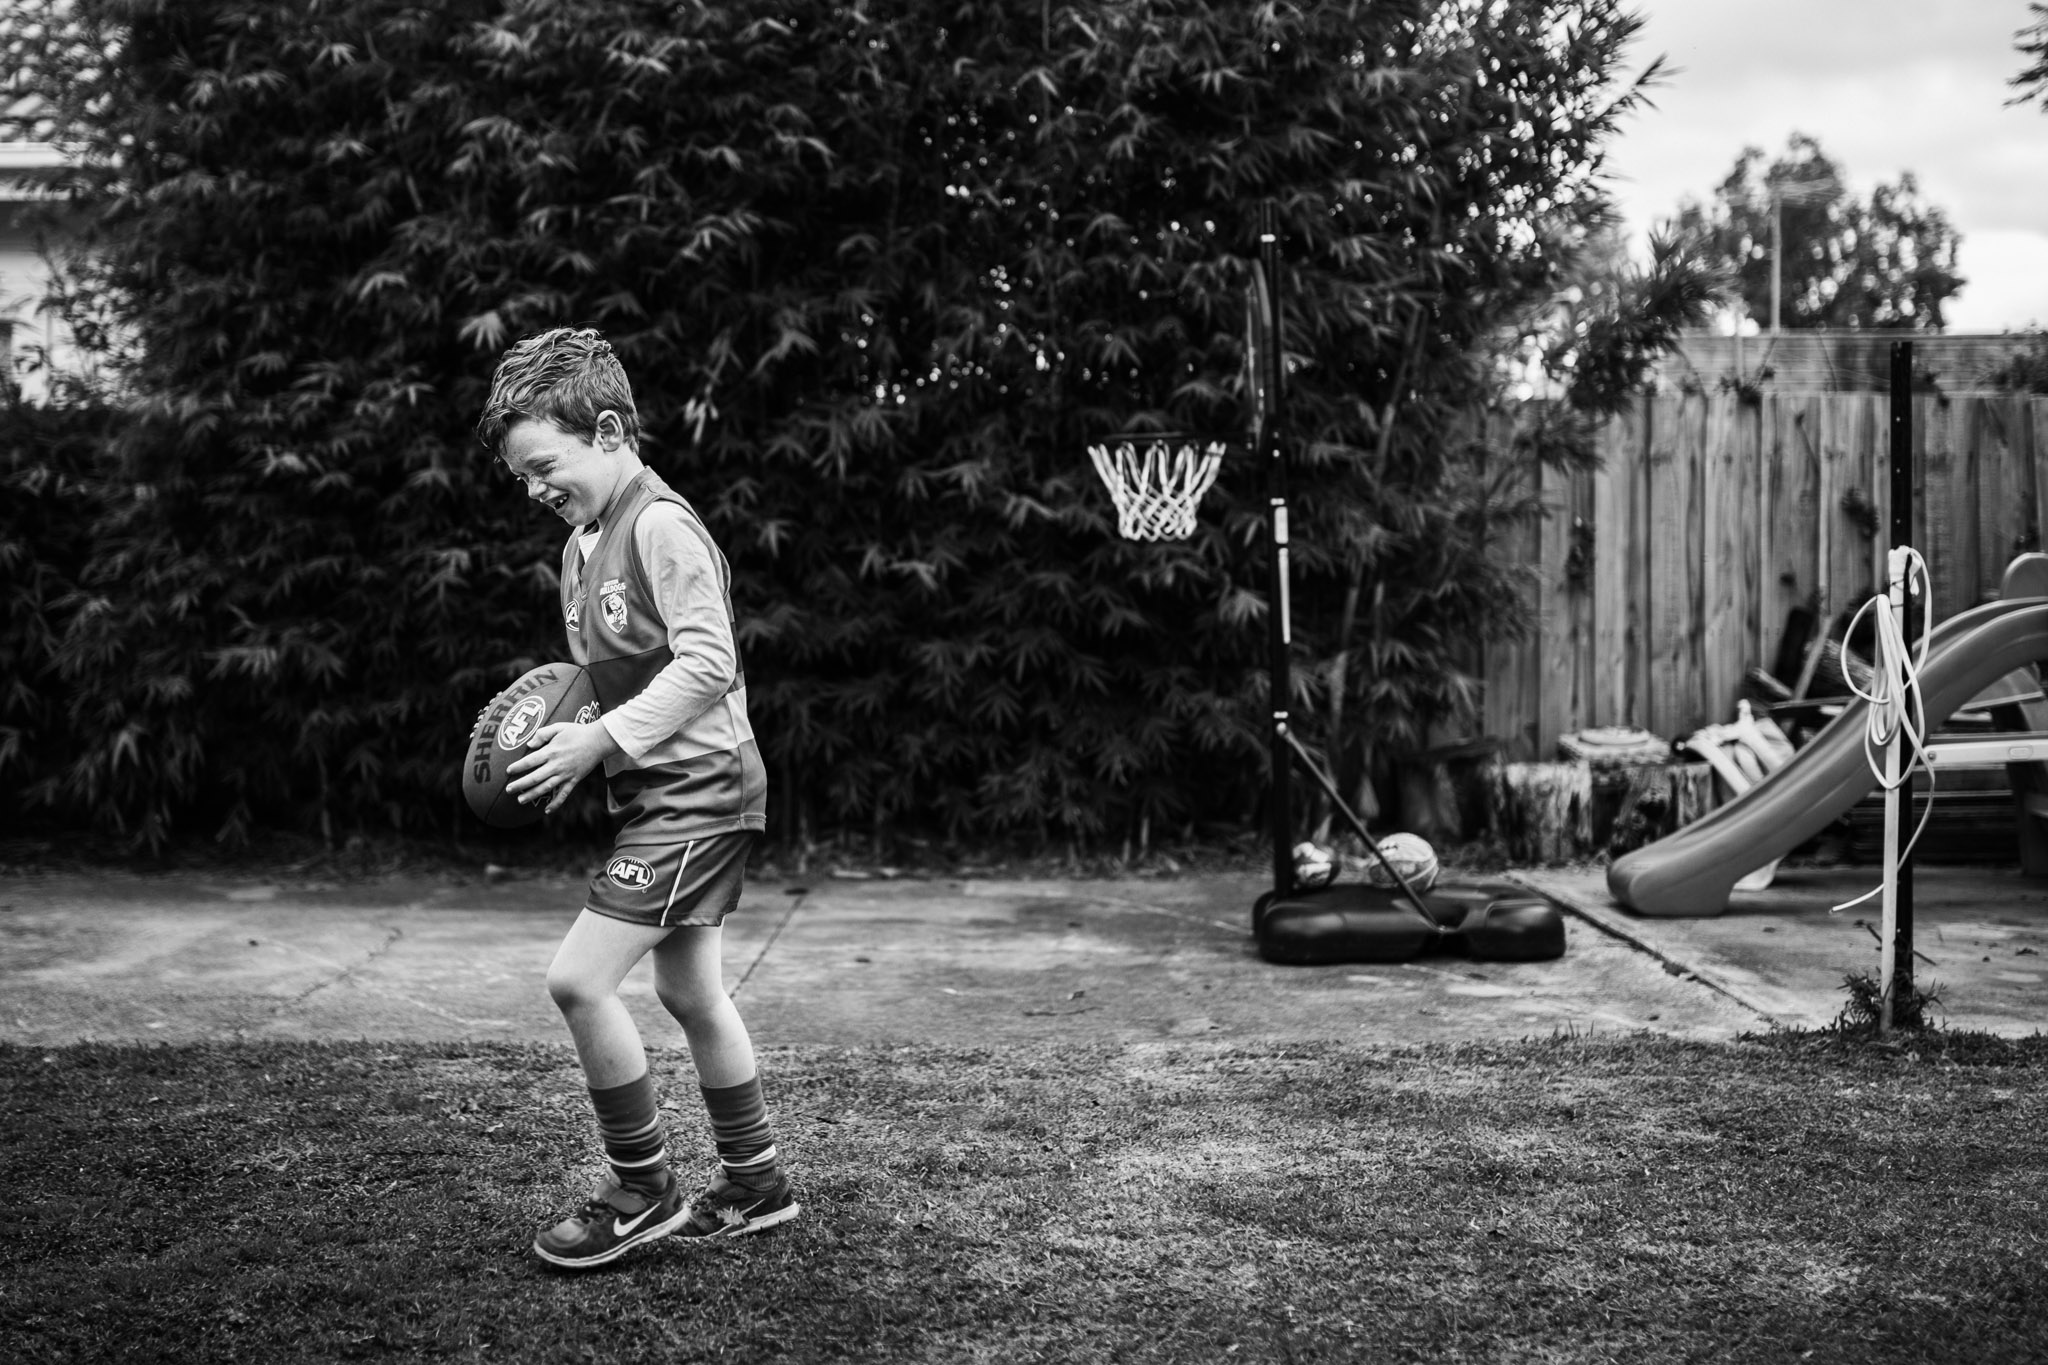 Boy smiling with football.